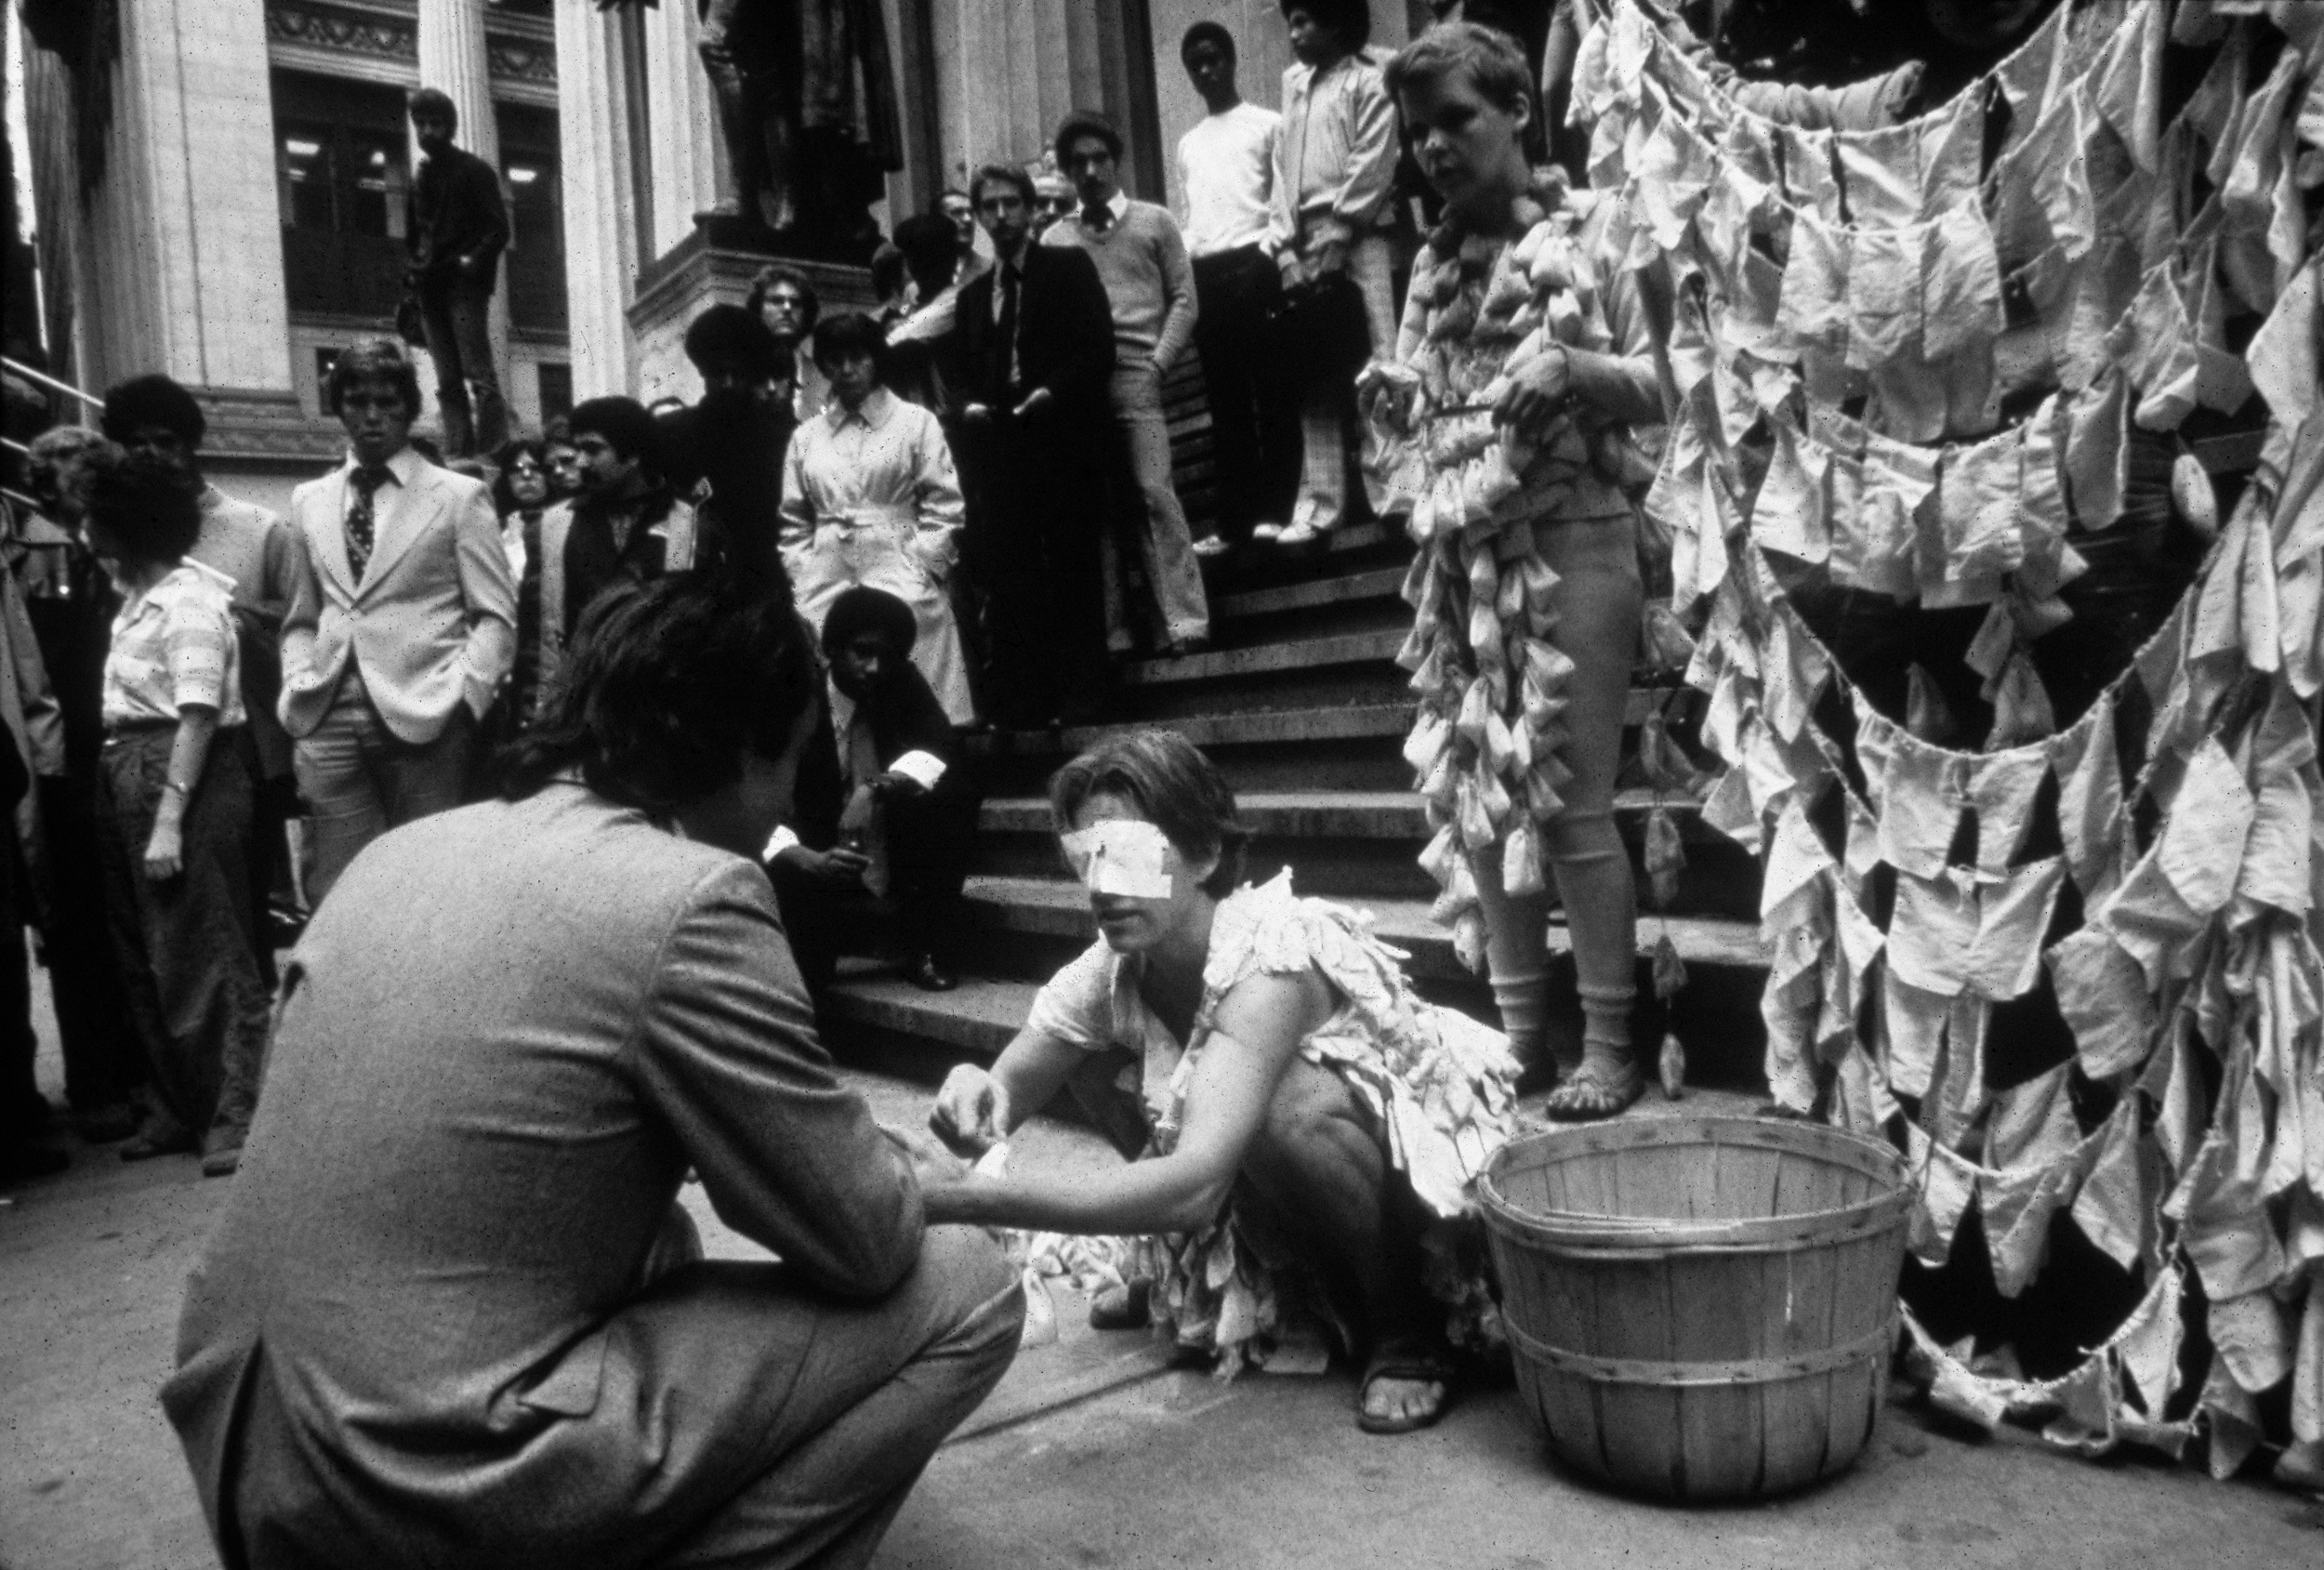 A blindfolded performer is squatting in front of a staircase next to a bucket in front of another performer wearing a costume made of small pouches.